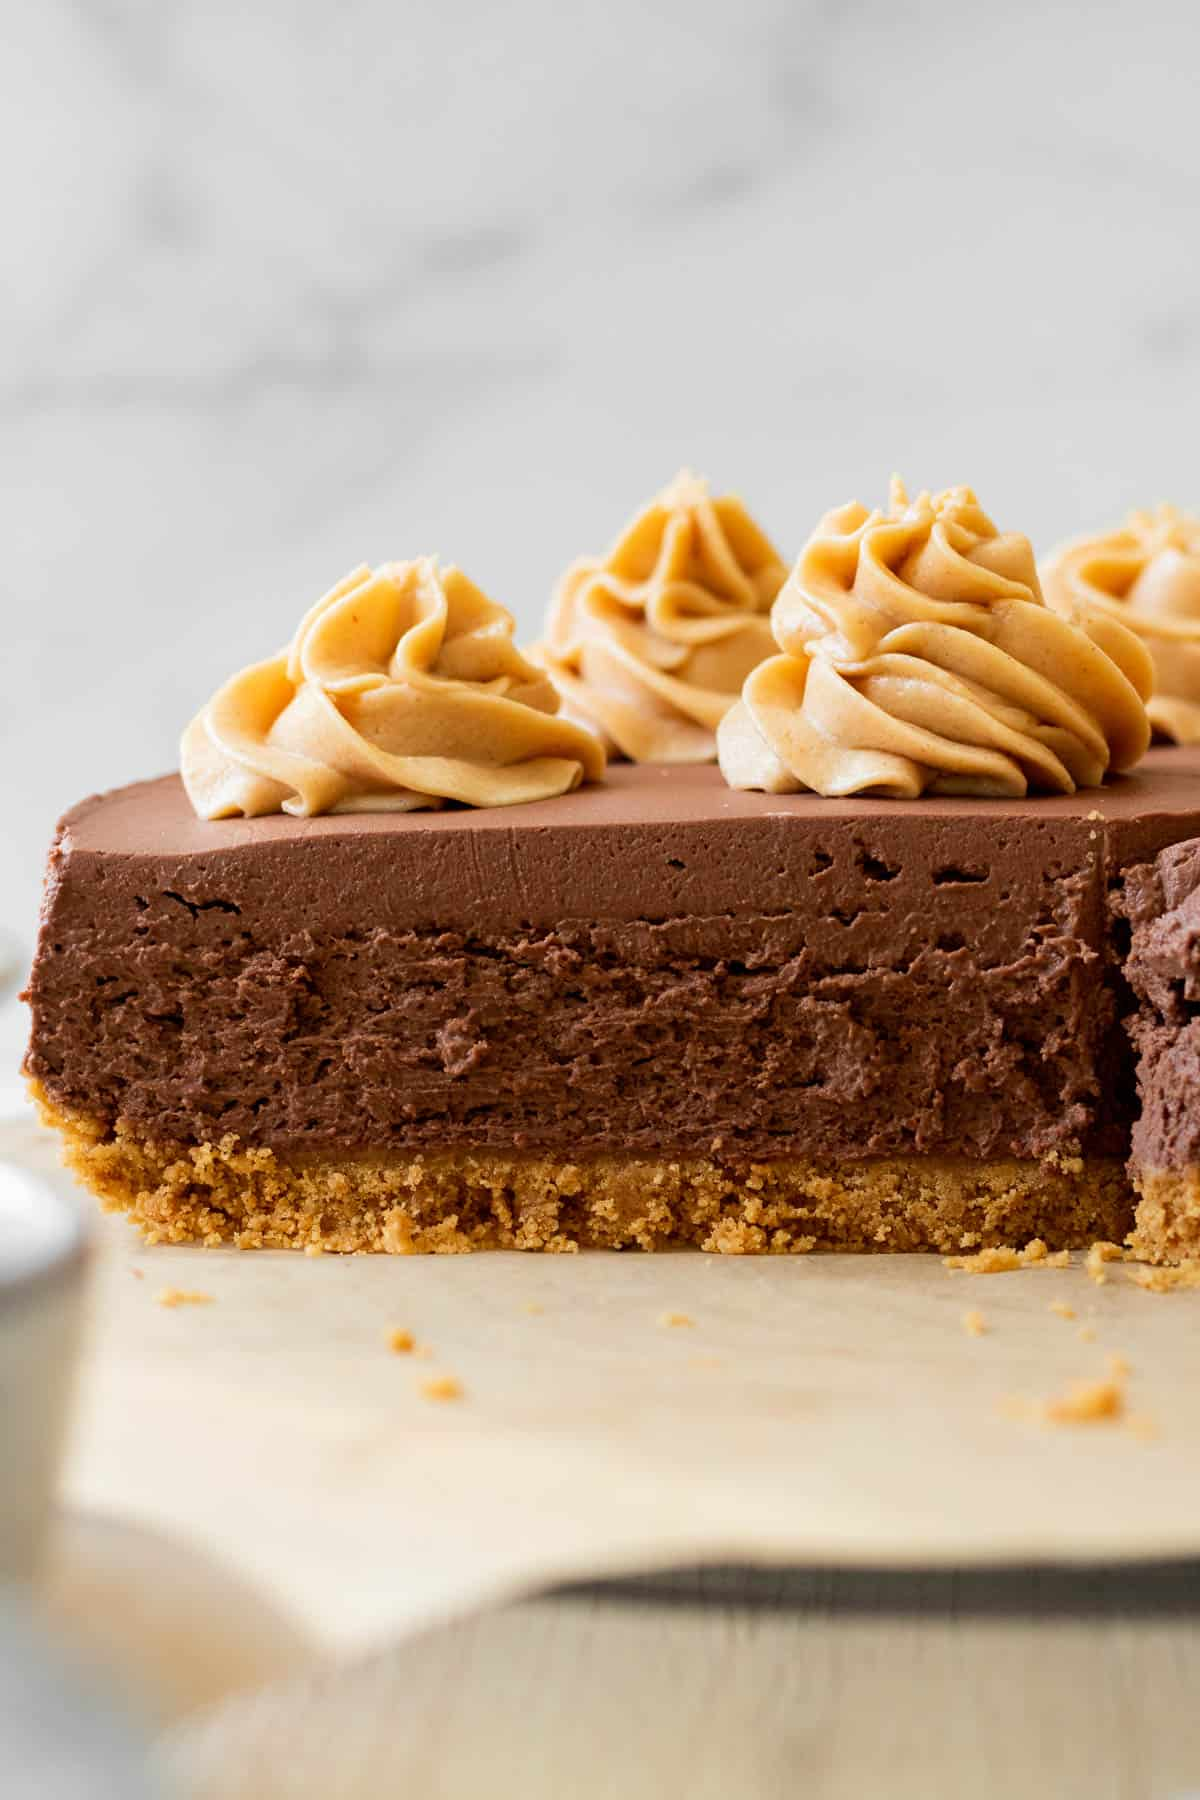 sliced chocolate cheesecake with peanut butter swirls on top